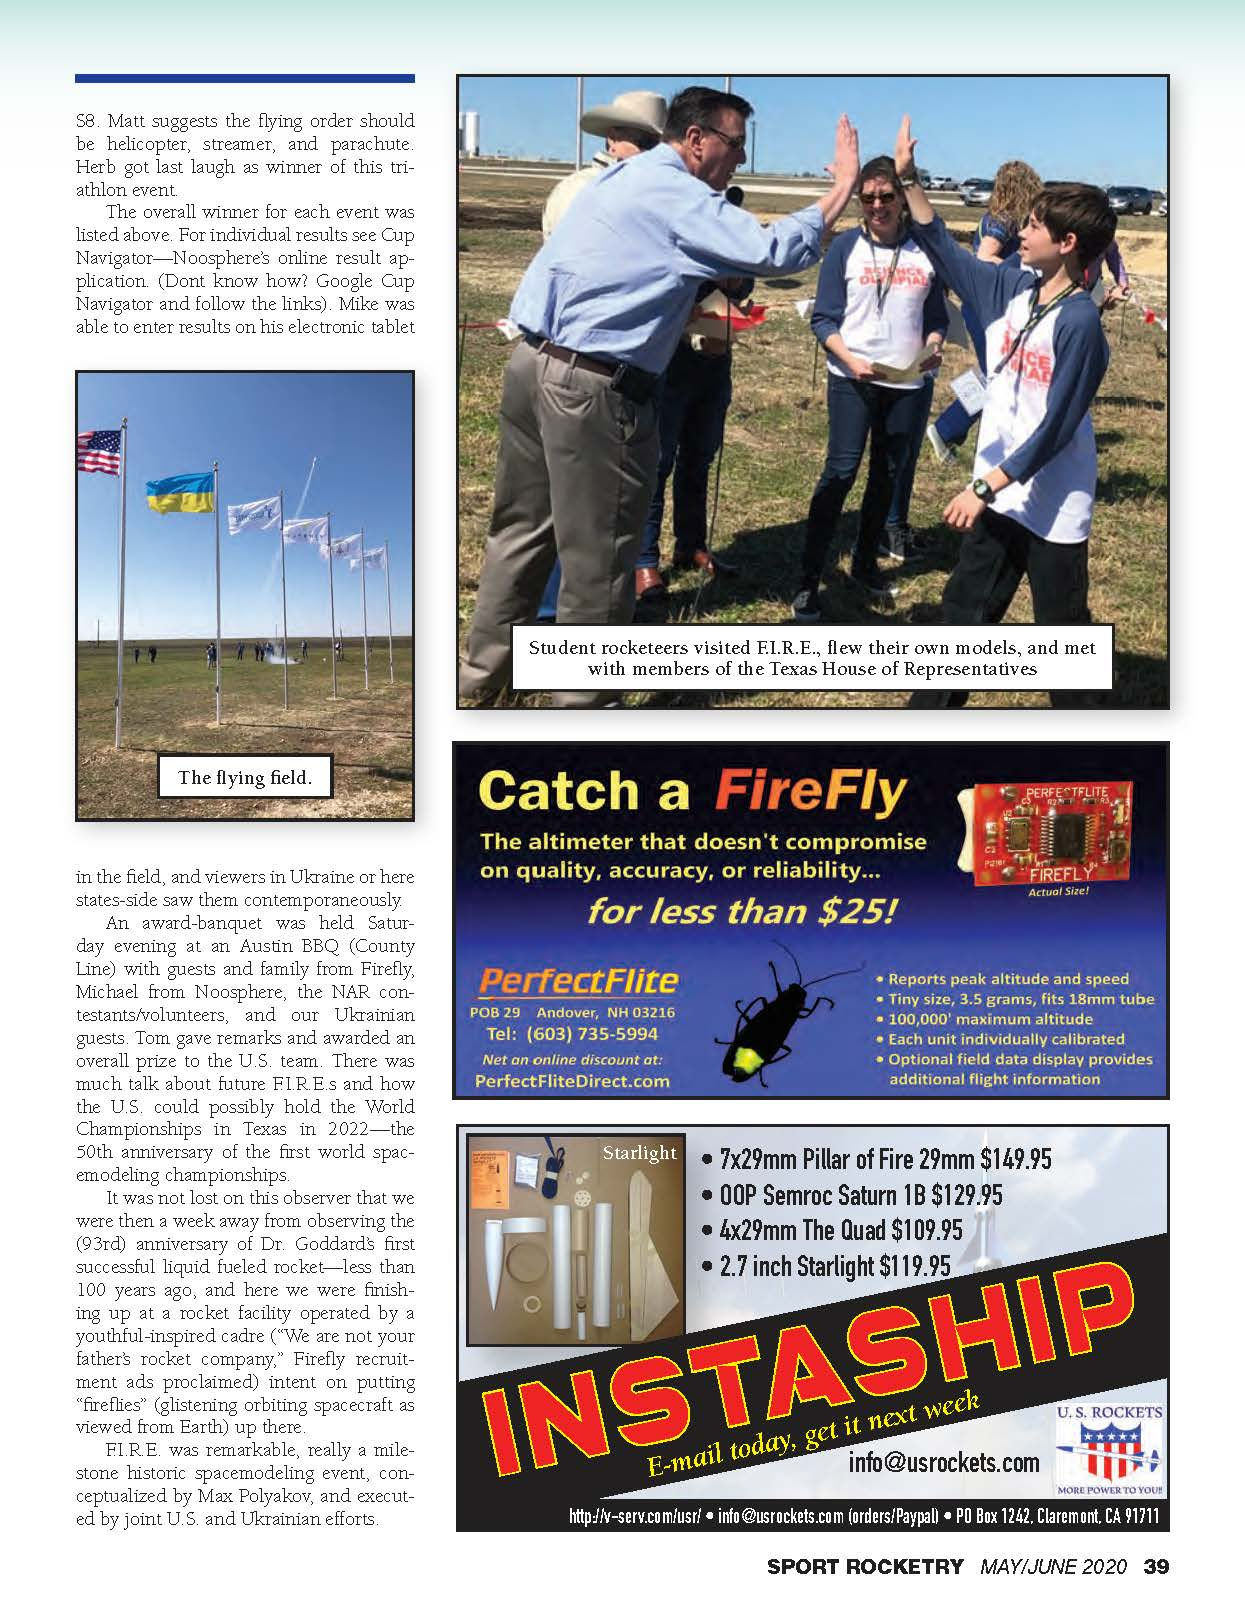 Sport_Rocketry_Magazine_FIRE-2019-Article_Page_8